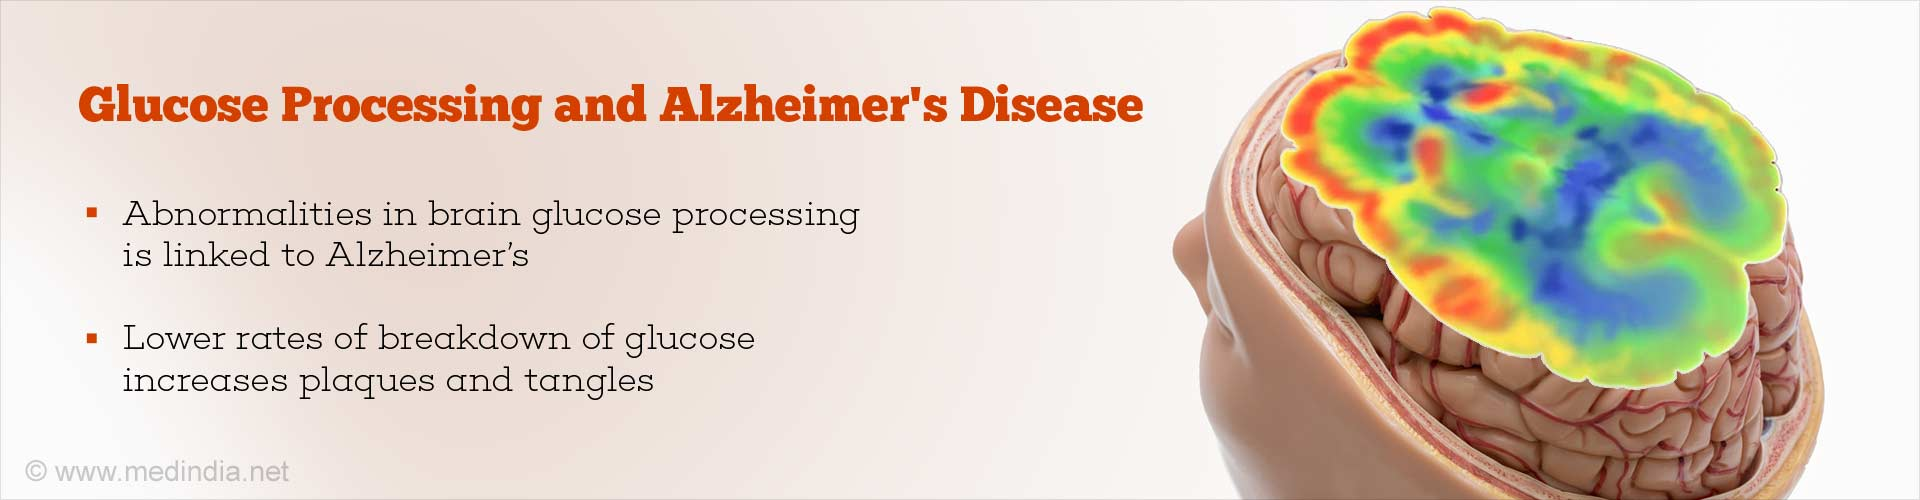 Increased Breakdown of Glucose in Brain Linked to Severity of Alzheimer's Disease